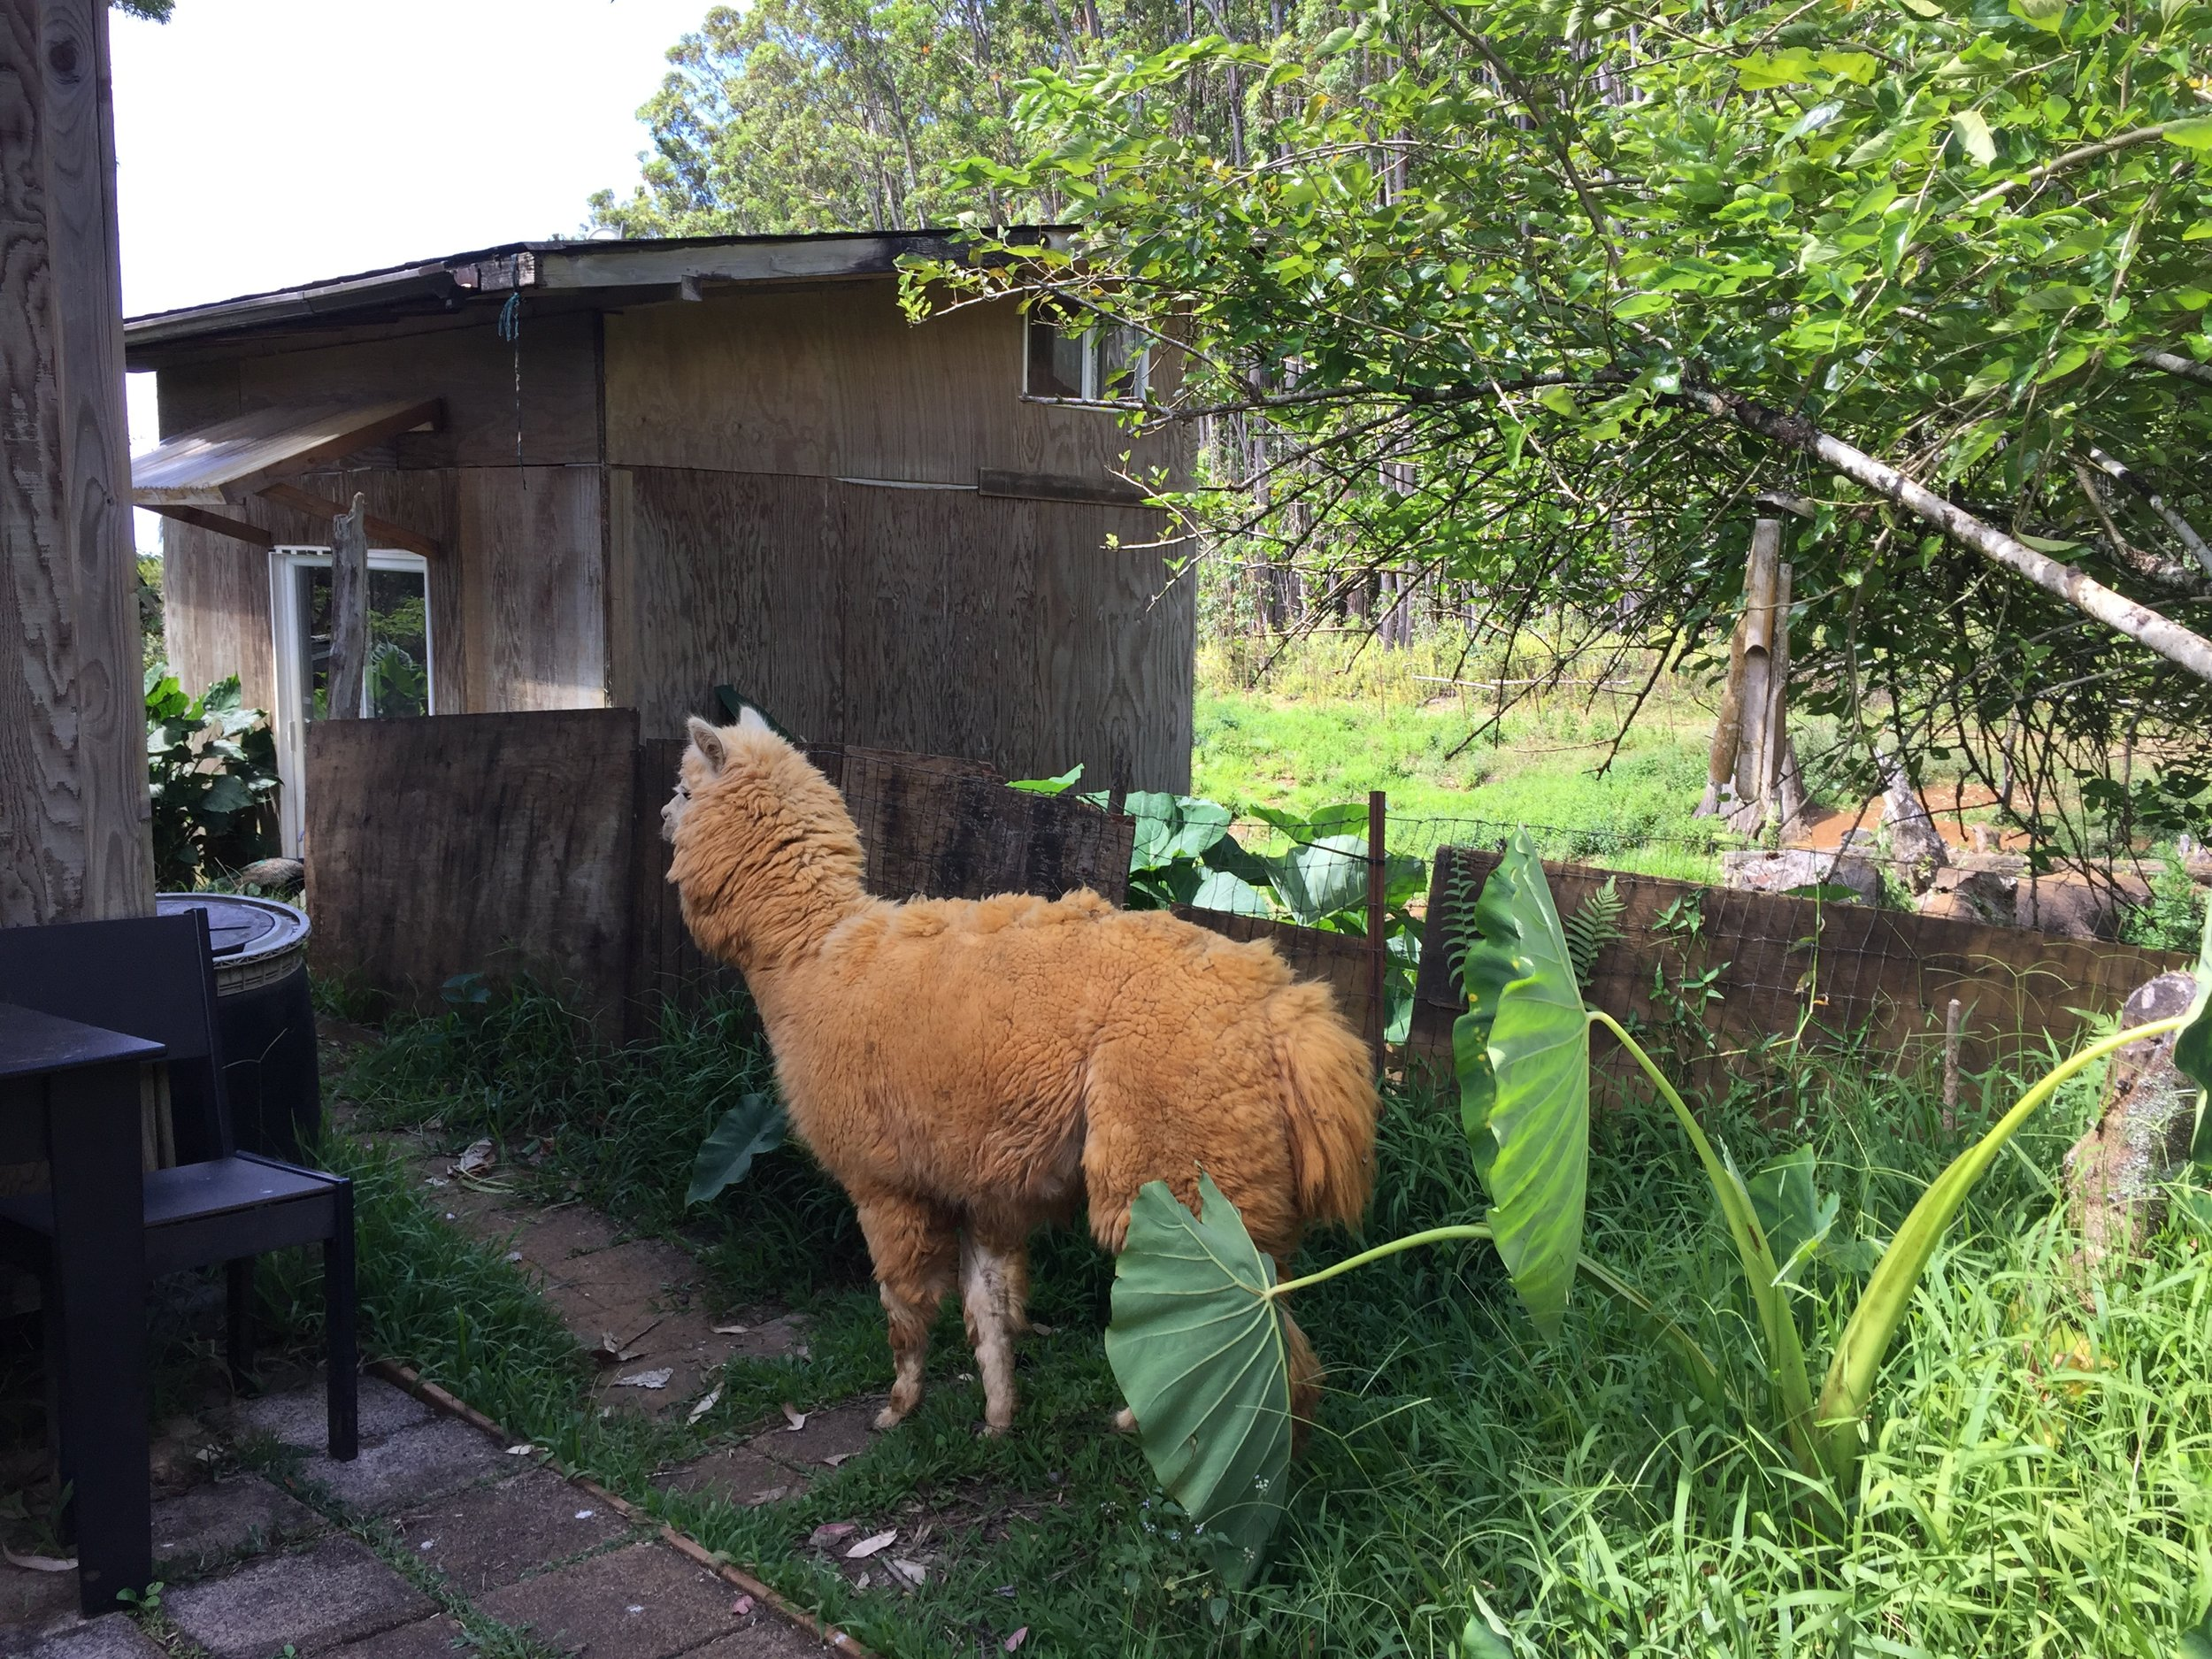 Along with Jeremy, the farm is home to a myriad of mythical creatures: an alpaca named Paco, two giant tortoises, a peacock named Clarence, chickens, horses, goats, dogs, and cats.